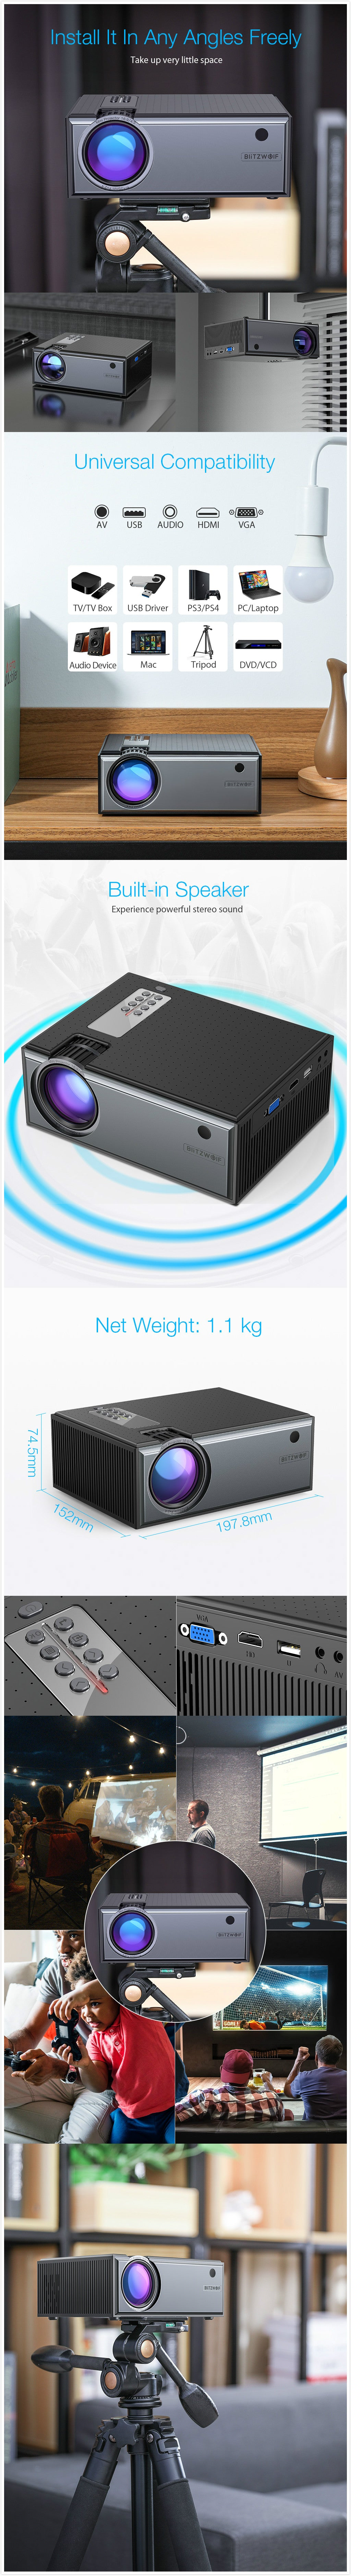 LCD Projector